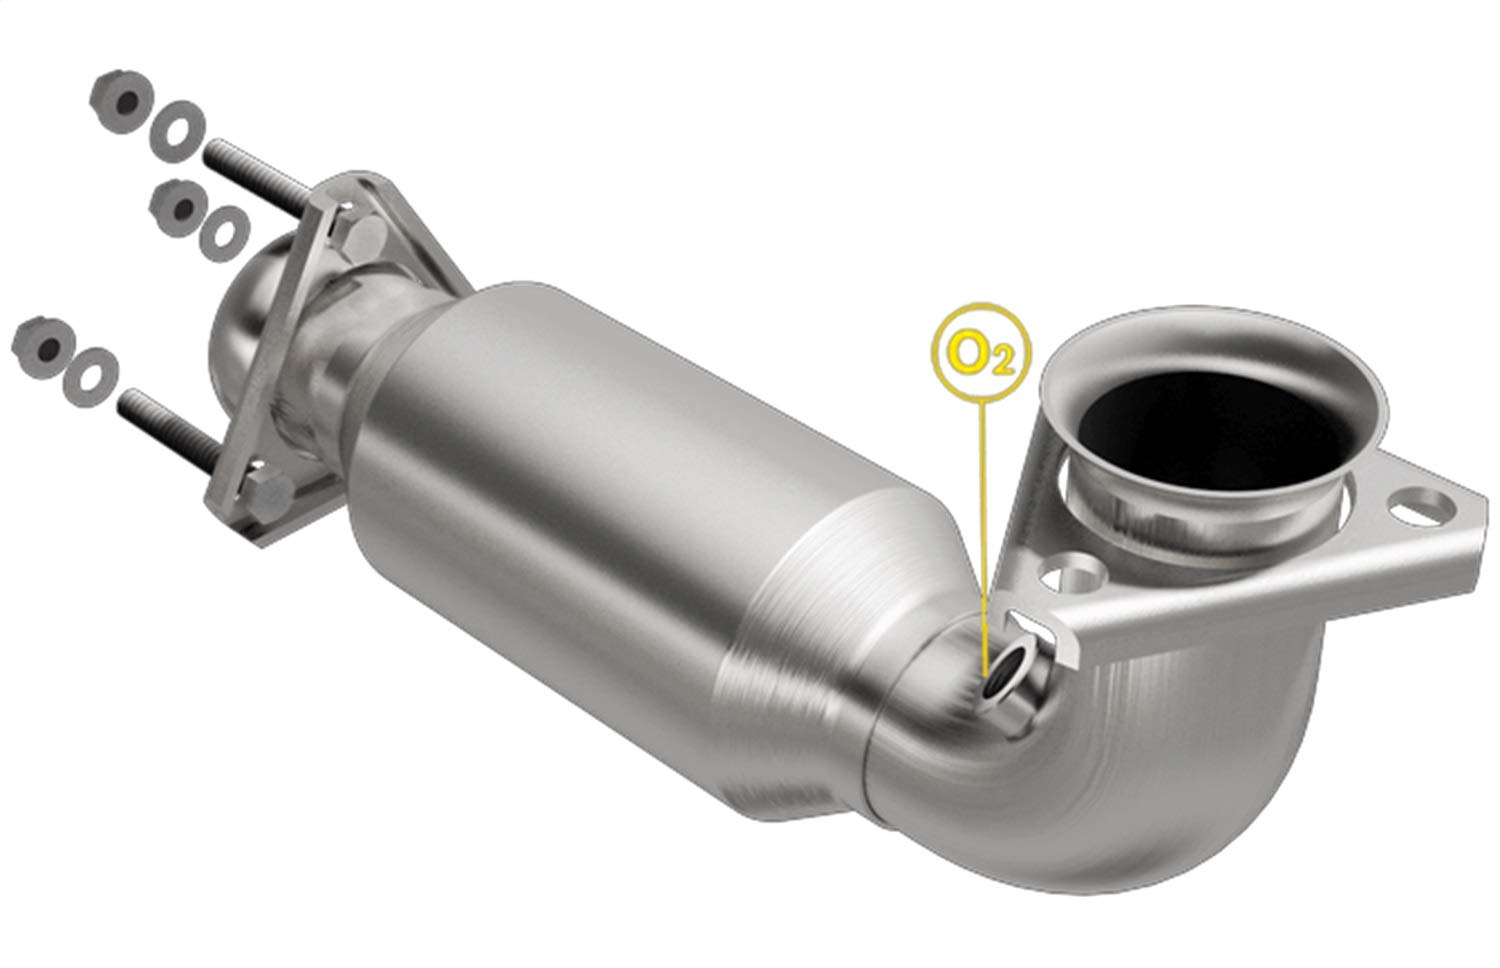 MagnaFlow Exhaust Products 3321409 Direct Fit California Catalytic Converter Main Piping Dia. 2.5 In. Inlet/Outlet